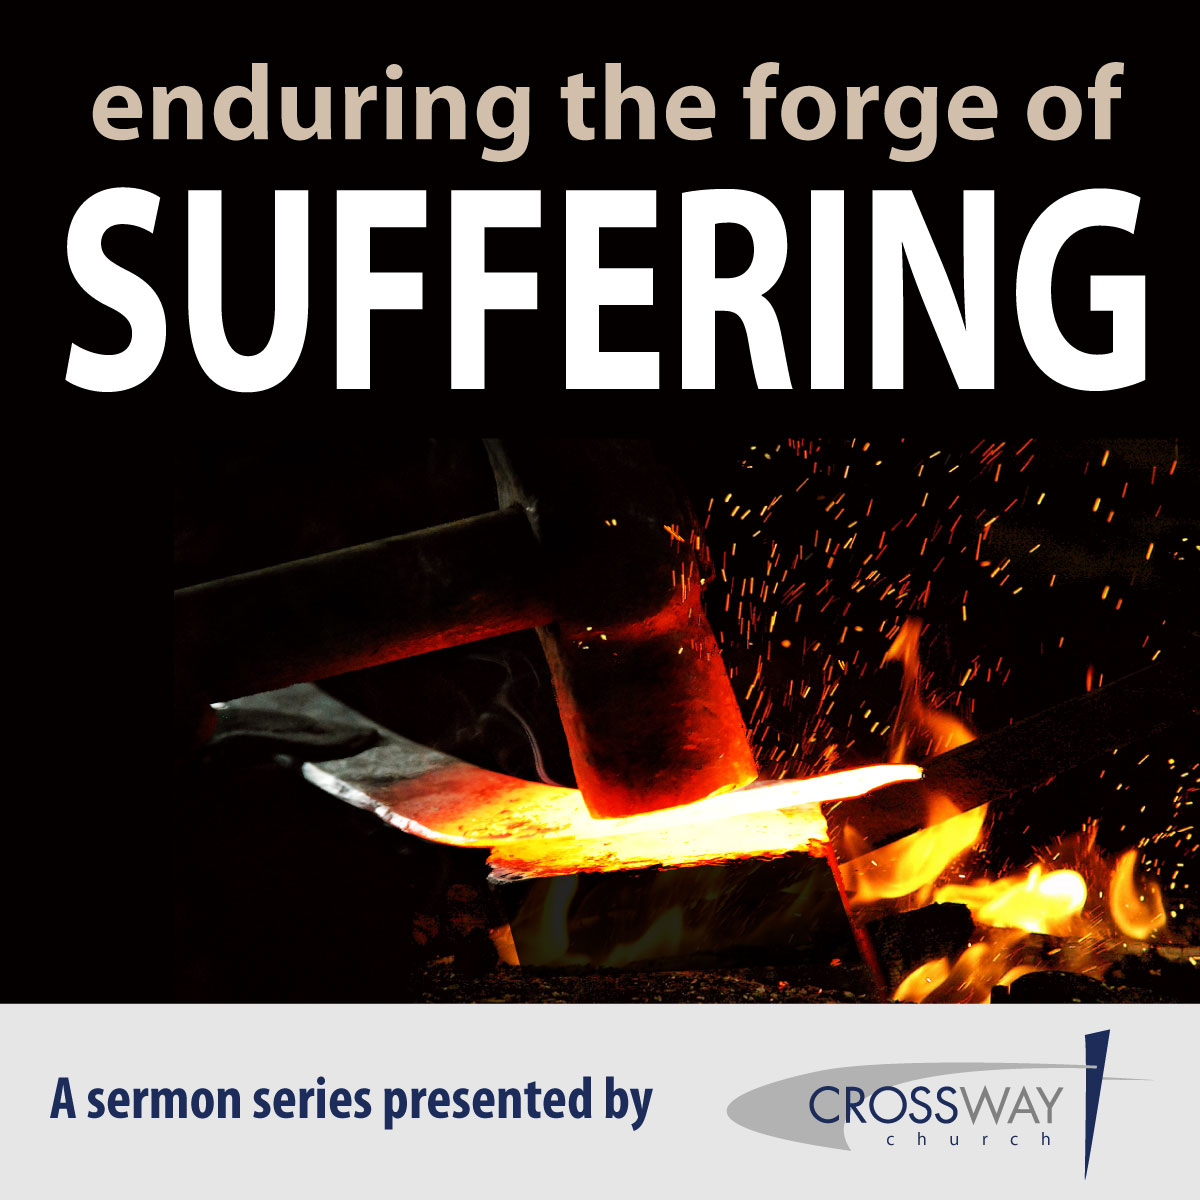 Enduring the Forge of Suffering: What Good Can Come From Suffering? (Part 6)